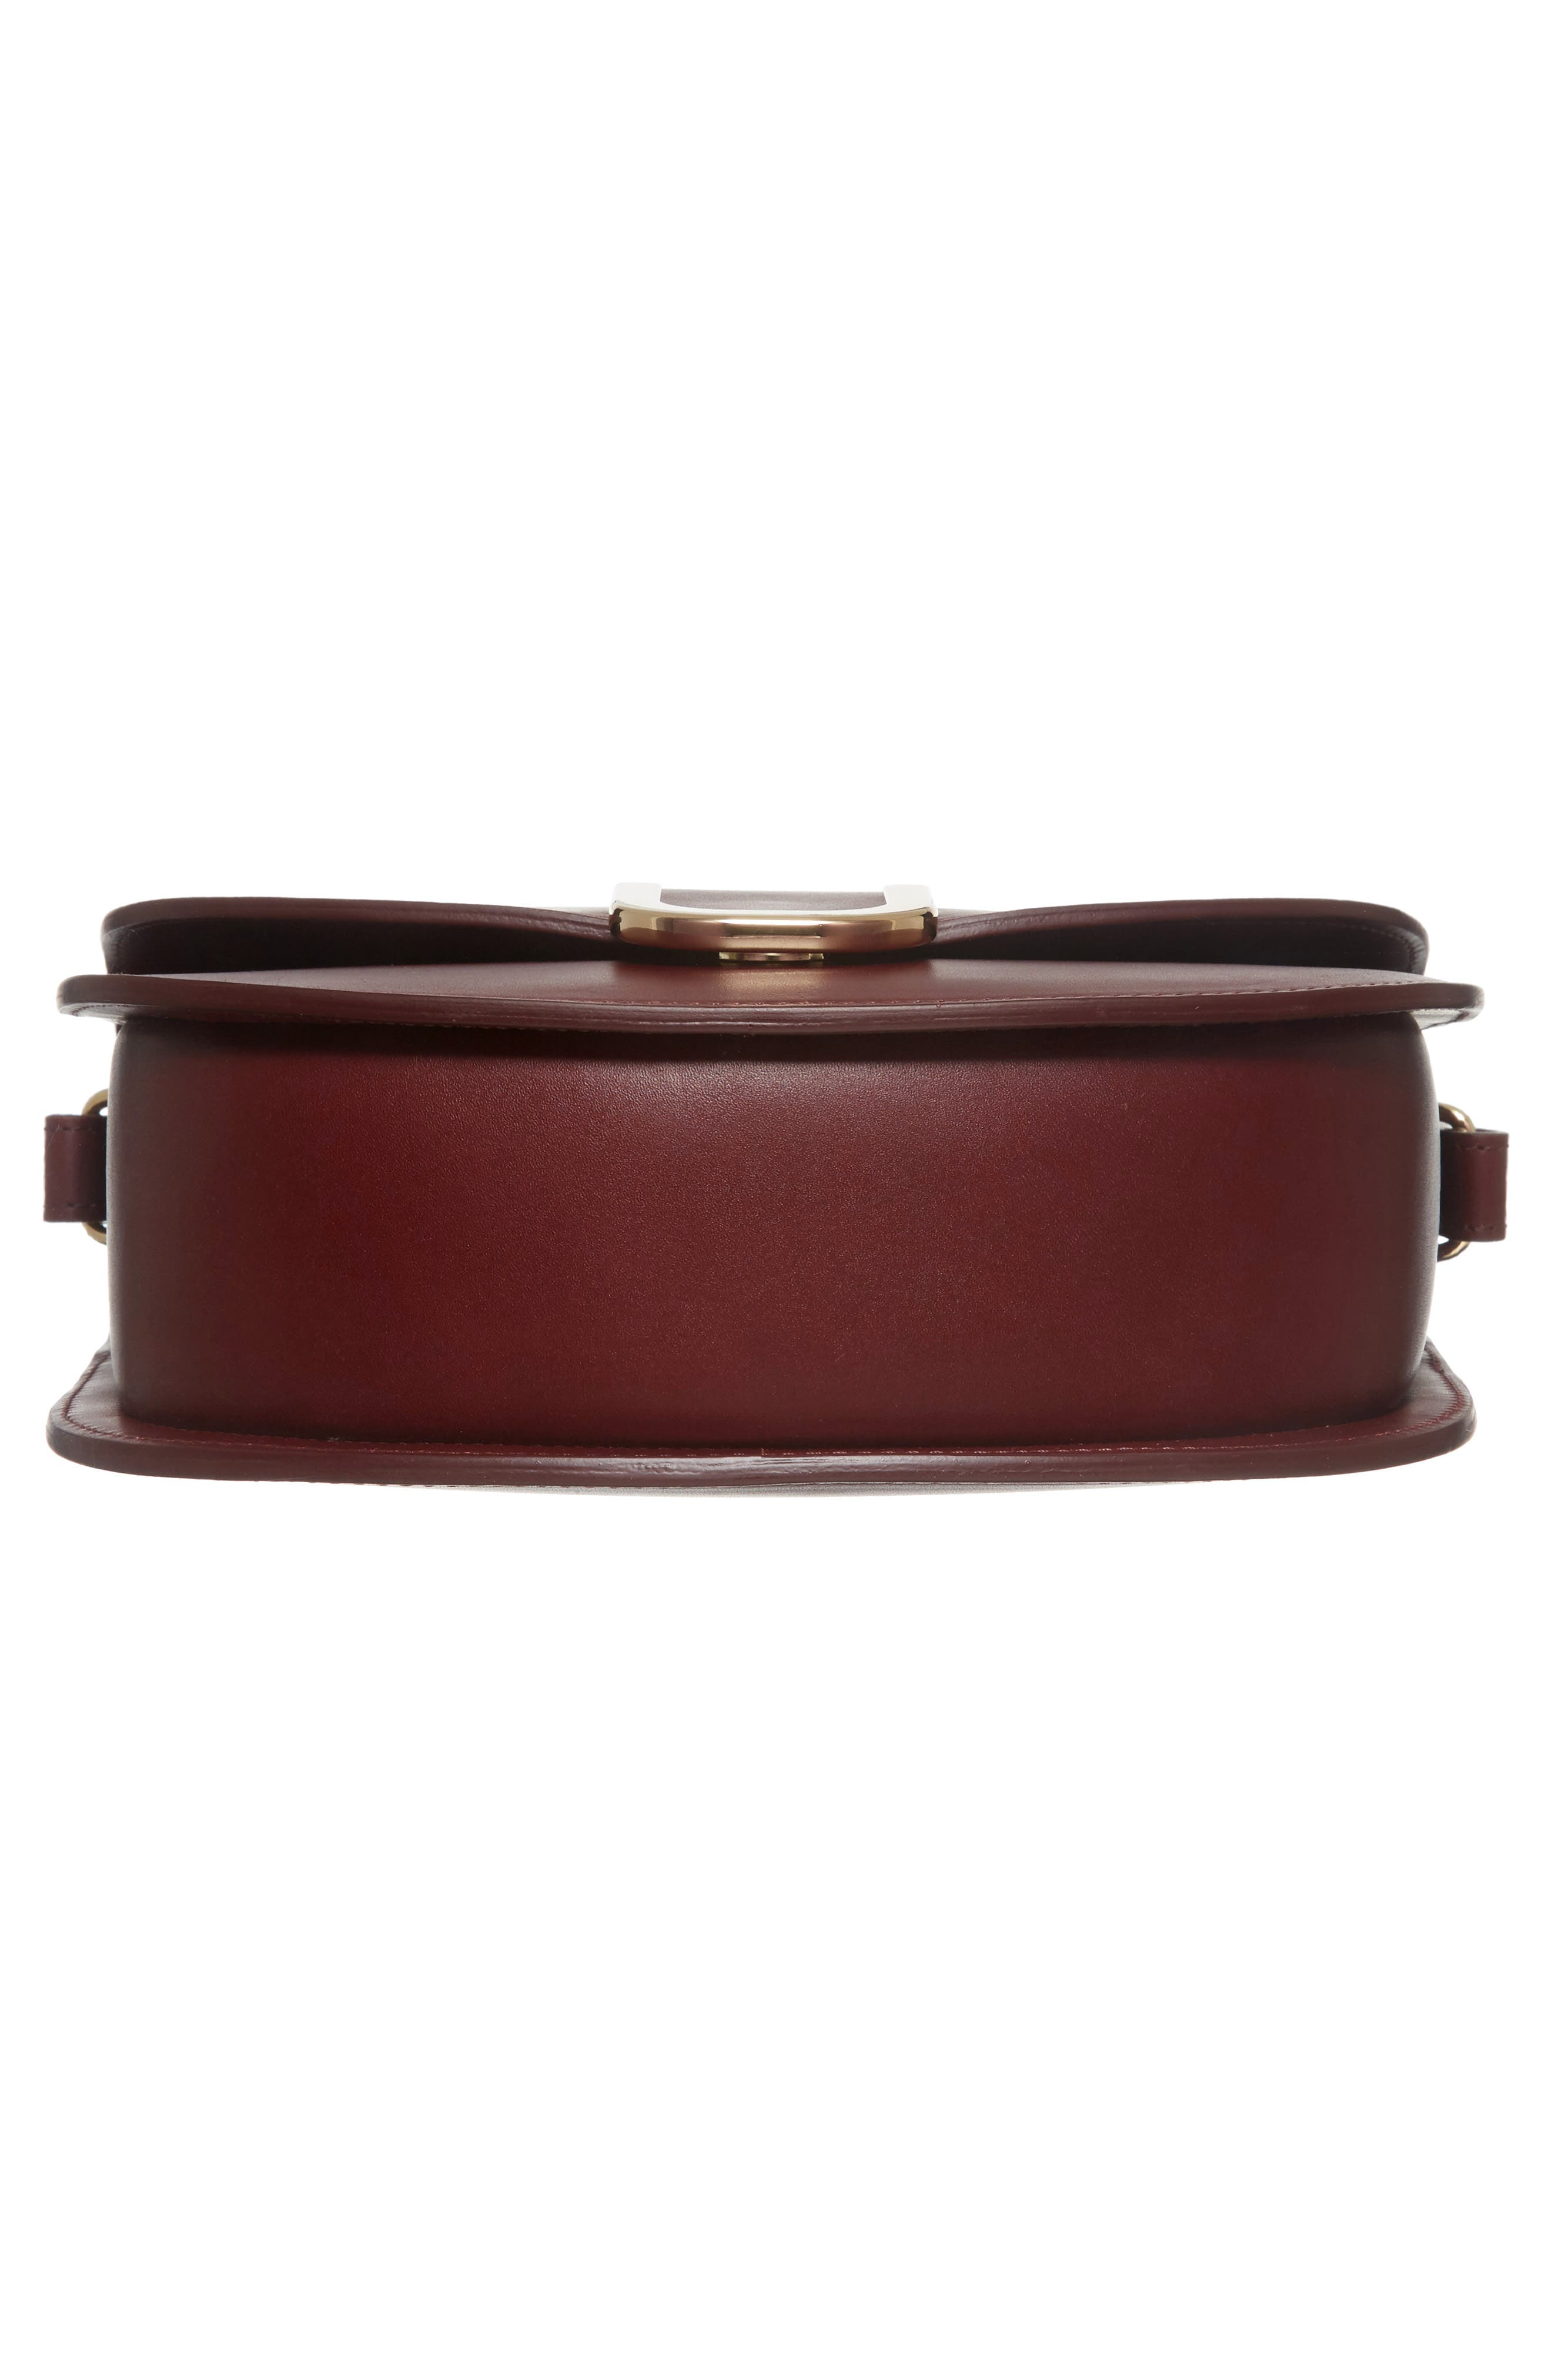 Soho Calfskin Leather Saddle Bag,                             Alternate thumbnail 6, color,                             600